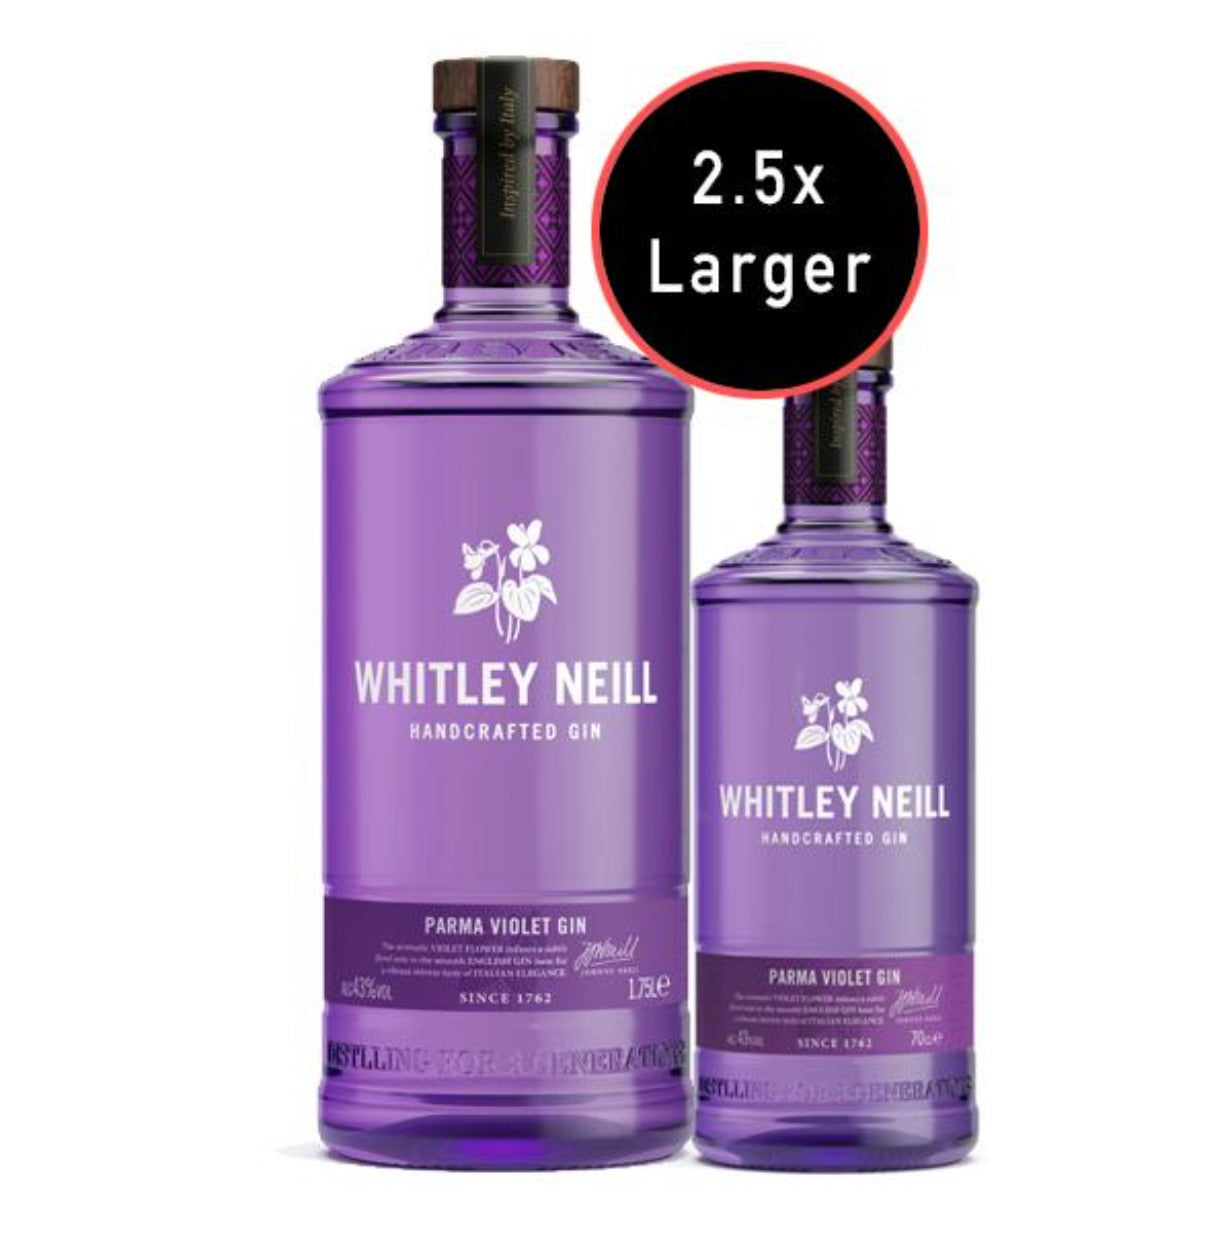 Whitley Neill Pink Parma Violet Gin Extra Large 1.75 Litre - thedropstore.com